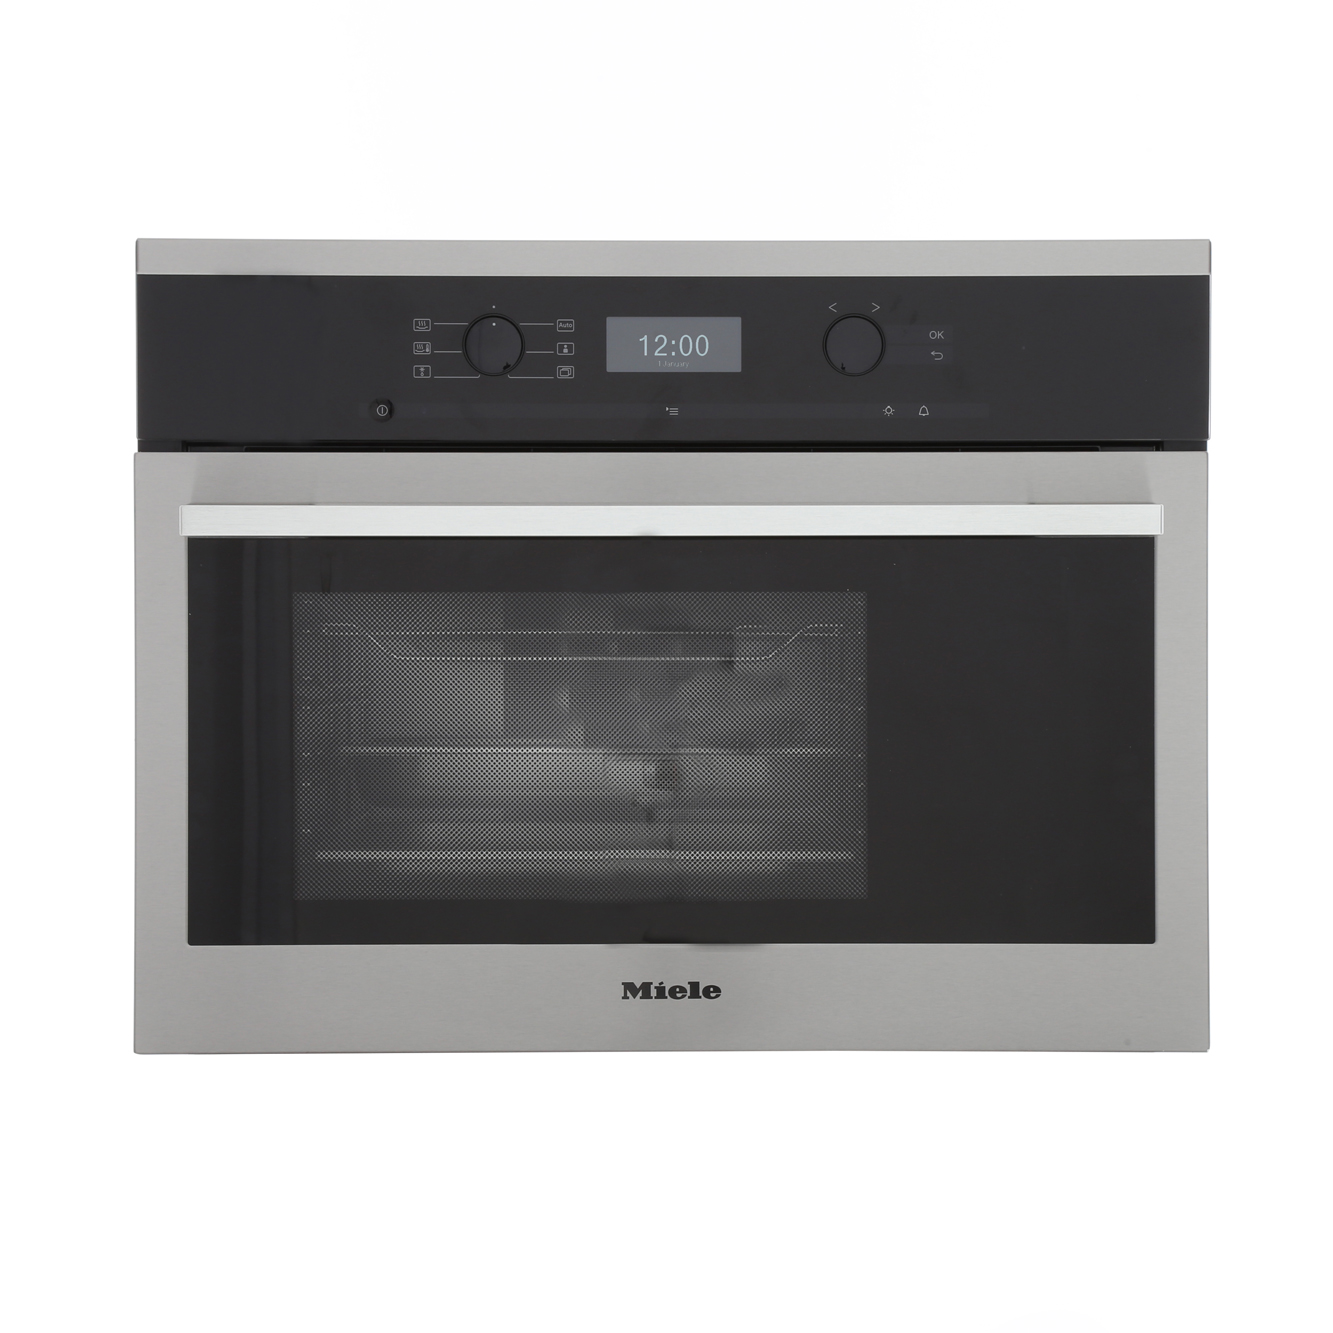 Miele ContourLine DG6300 CleanSteel Steam Oven